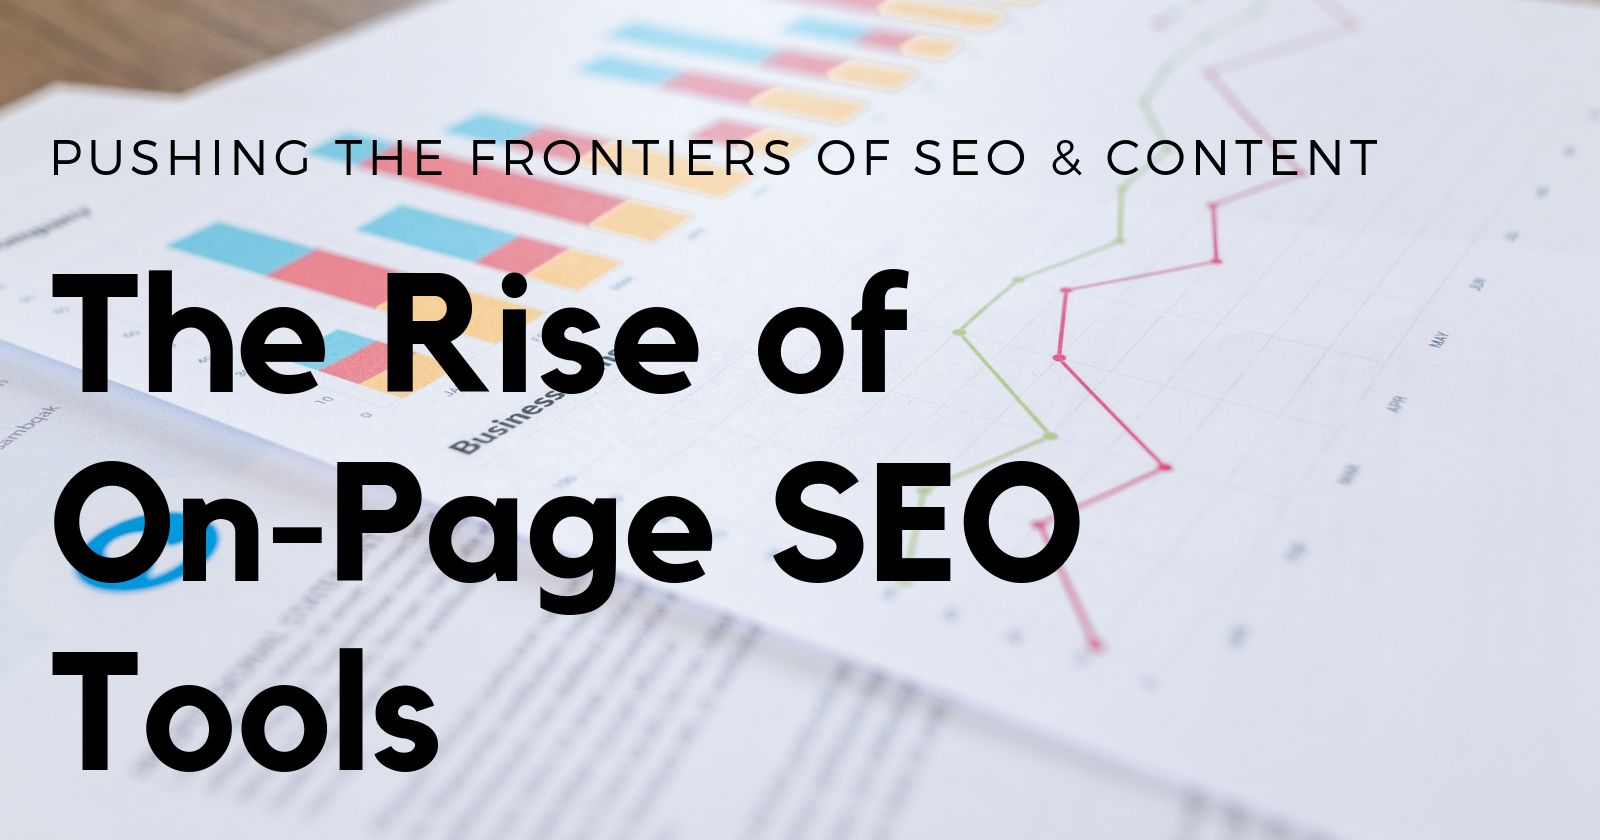 The Rise of On-Page SEO Tools: Pushing the Frontiers of SEO